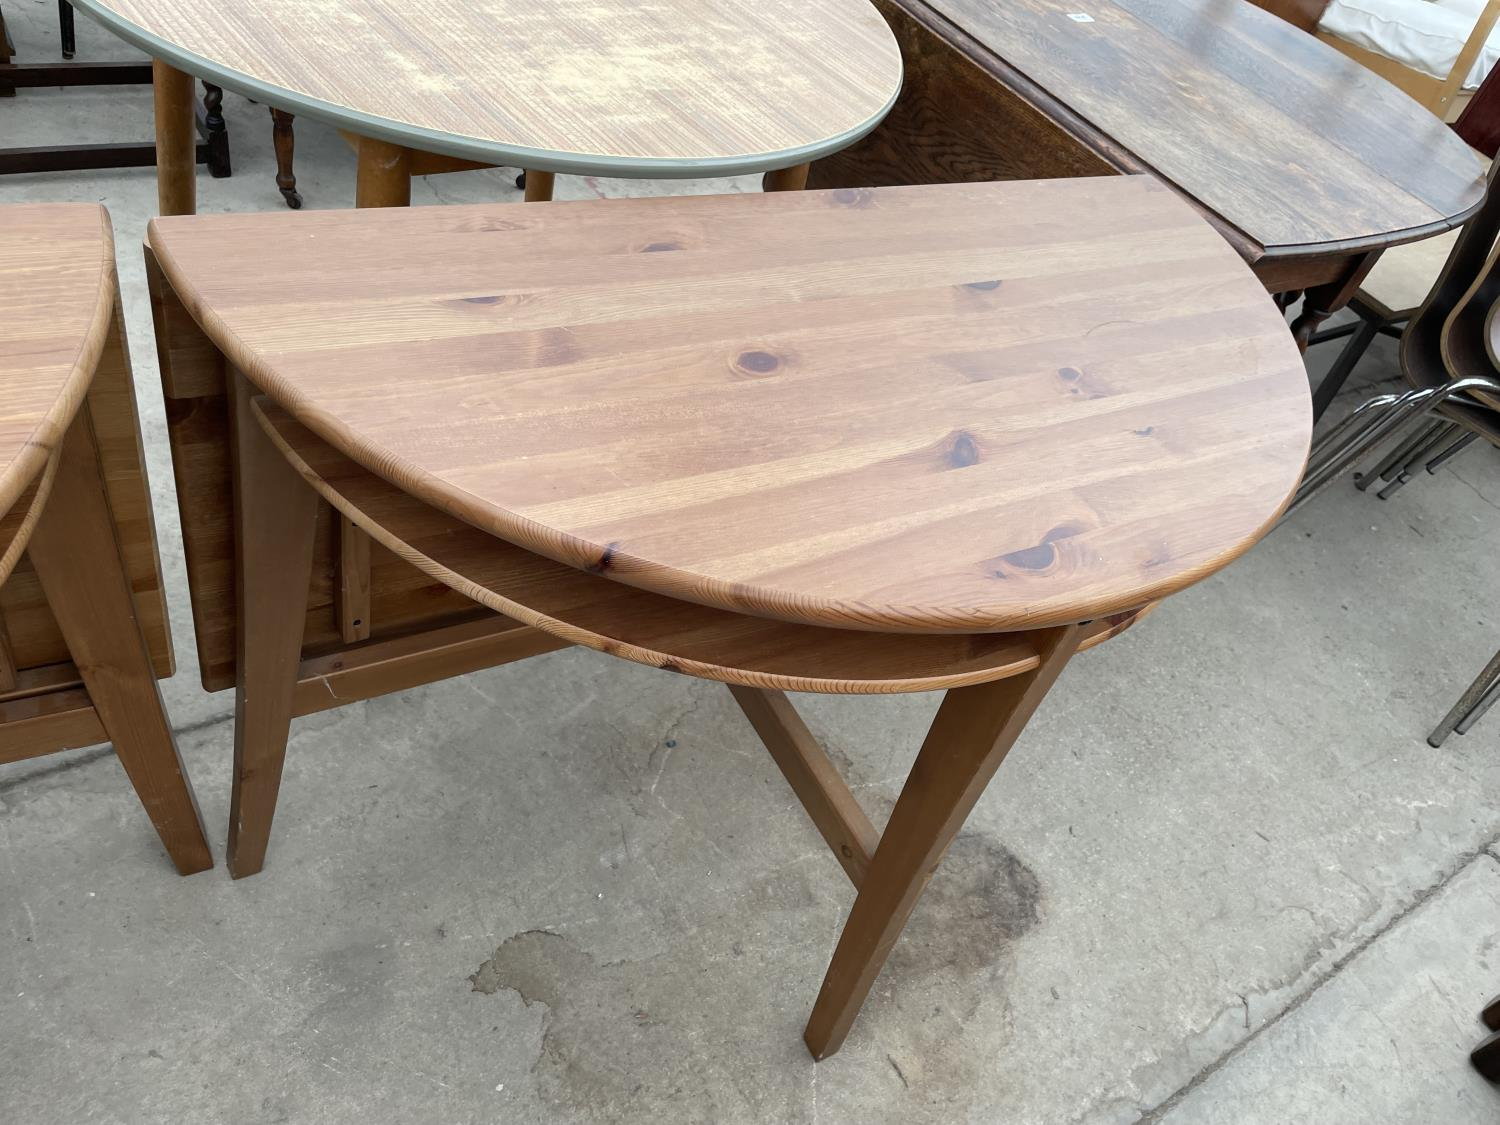 TWO PINE DROP LEAF TABLES - Image 4 of 5